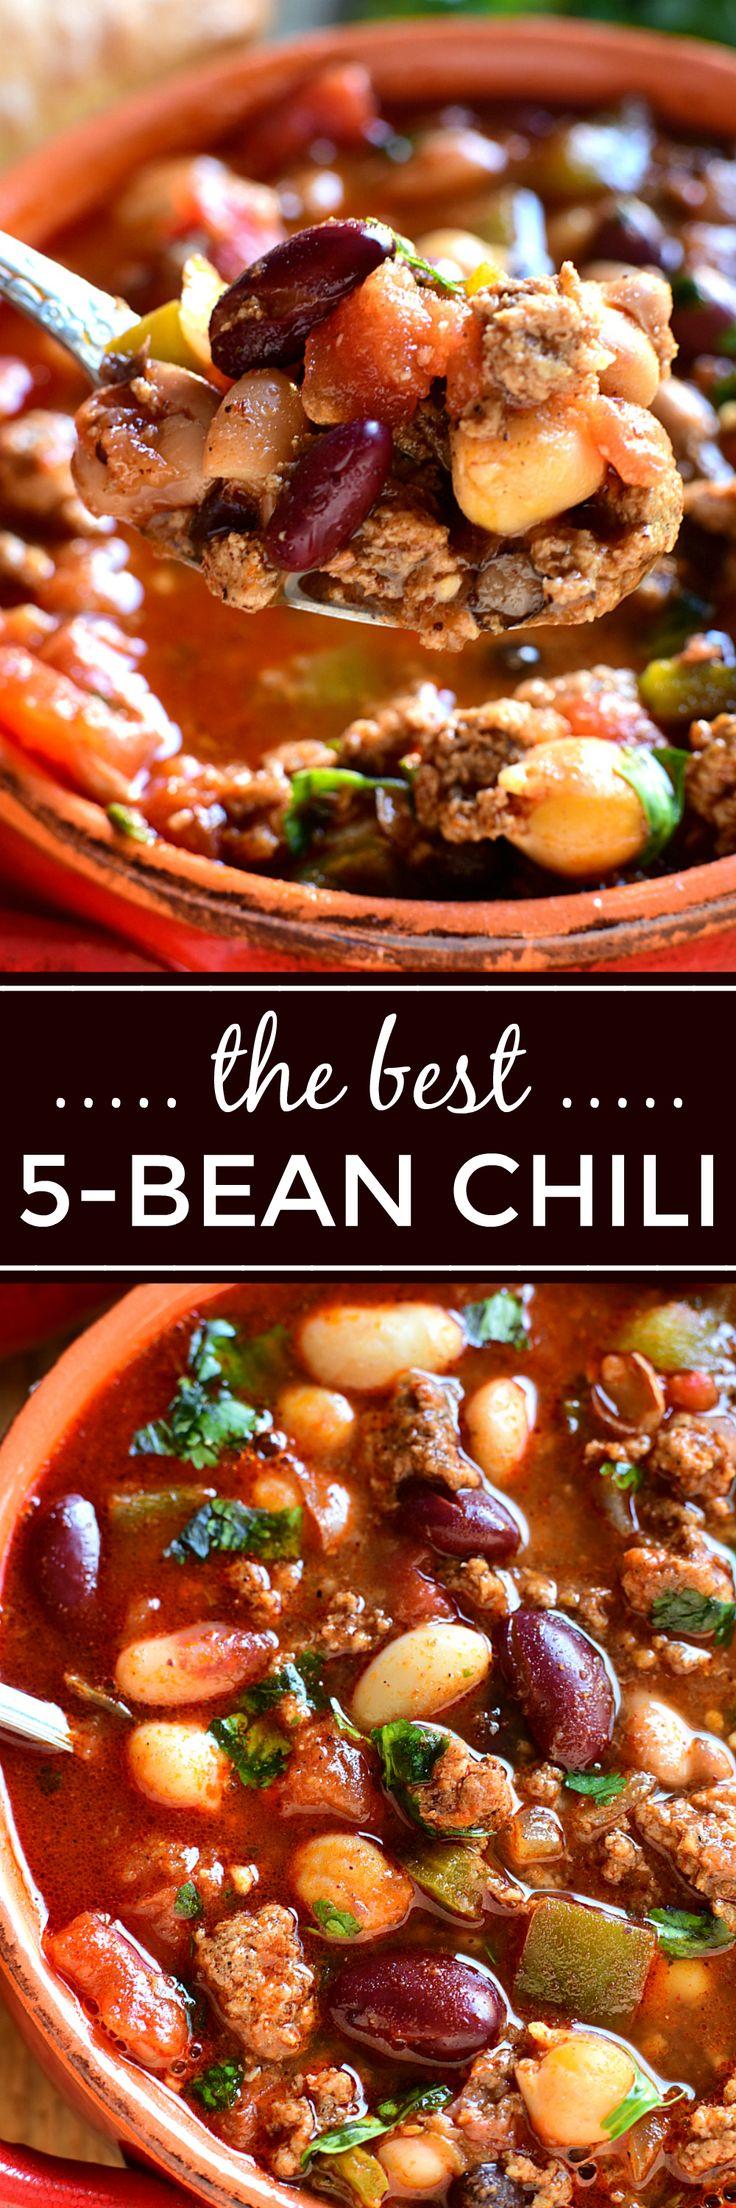 This 5 Bean Turkey Chili is loaded with fresh ingredients and packed with flavor. A deliciously satisfying meal that's also quick & easy to whip up!